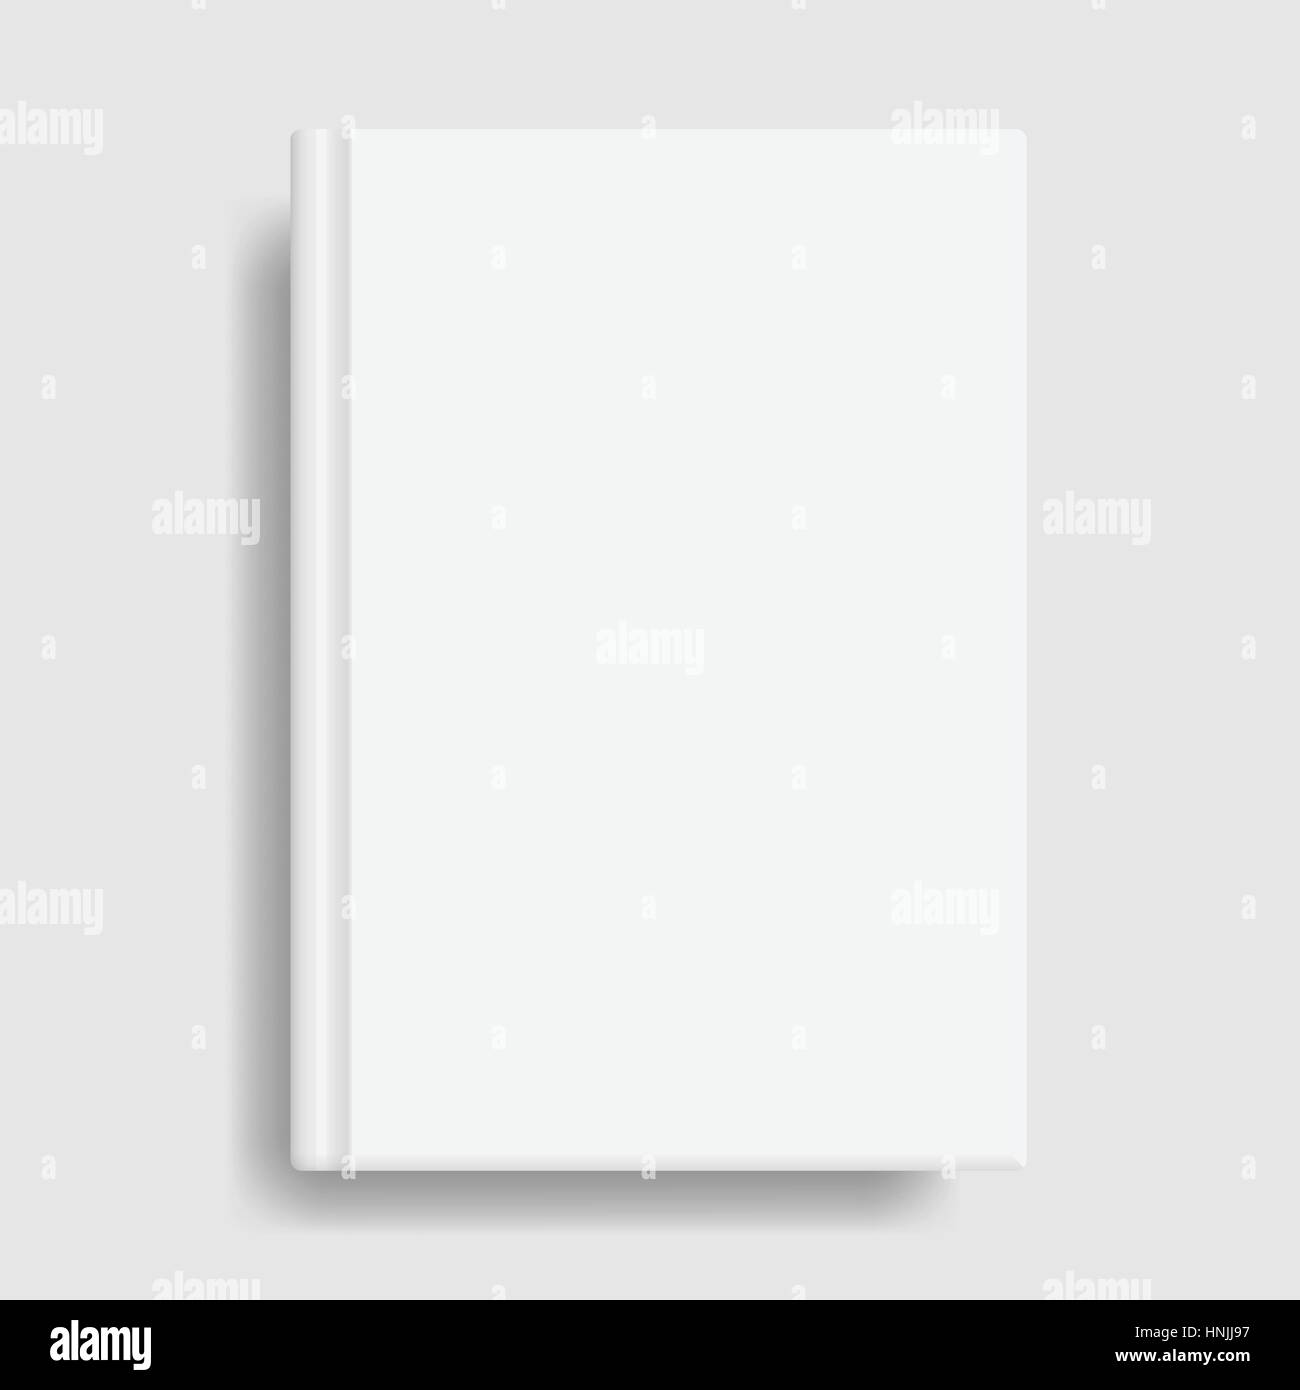 Book Cover Mockup Blank White Template Idea For Diary Or Textbook Design School Educational Institution Vector Illustration Art